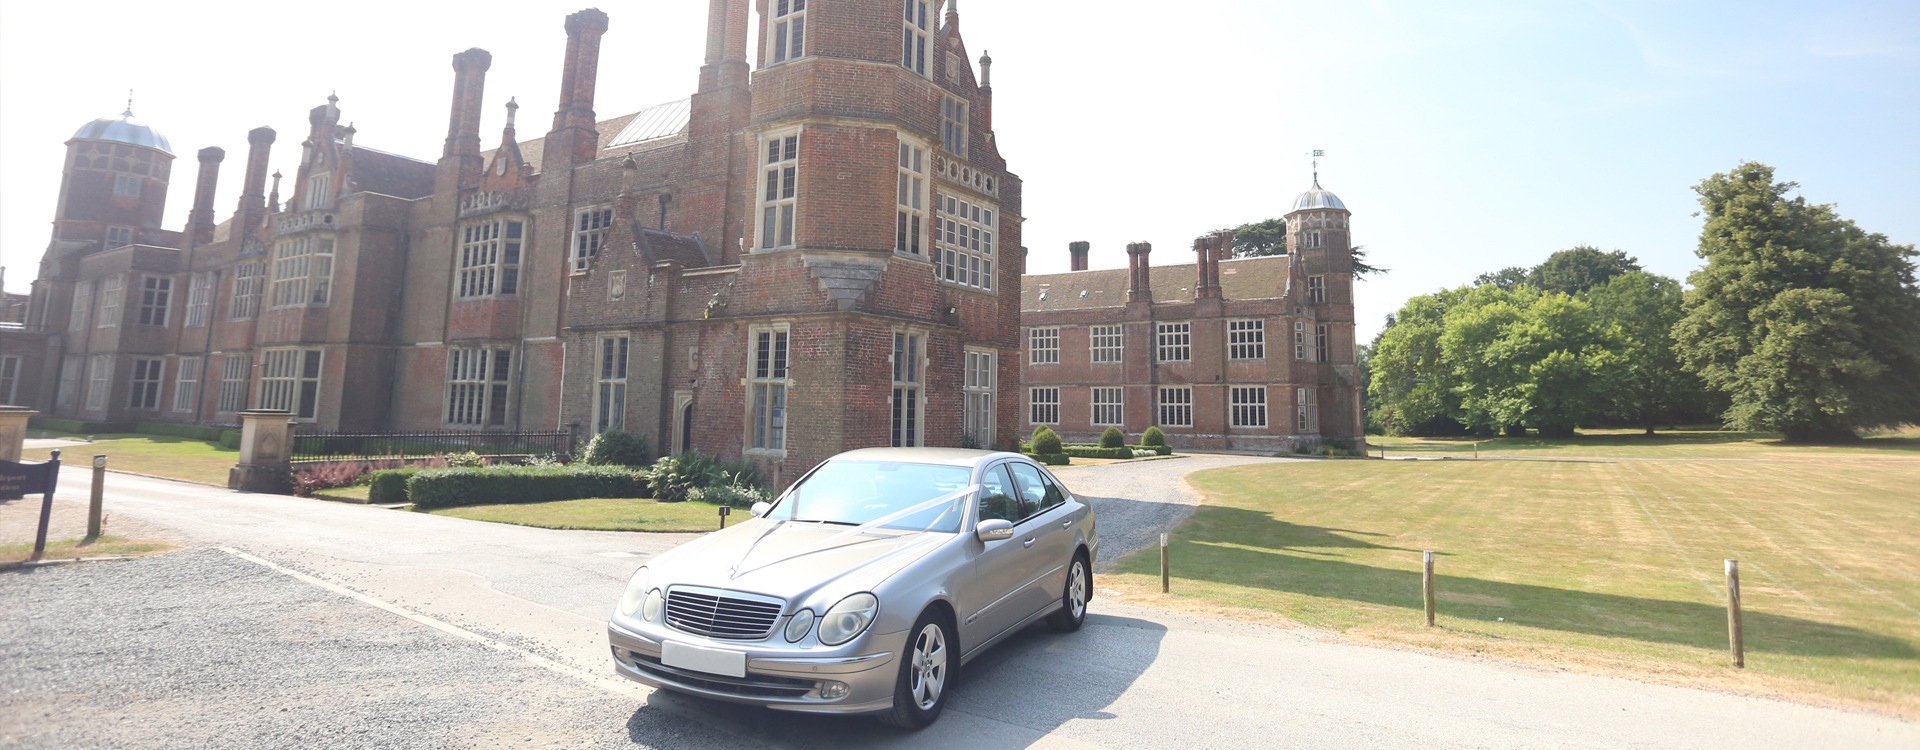 Chauffeur Driven Mercedes Car Banner 3